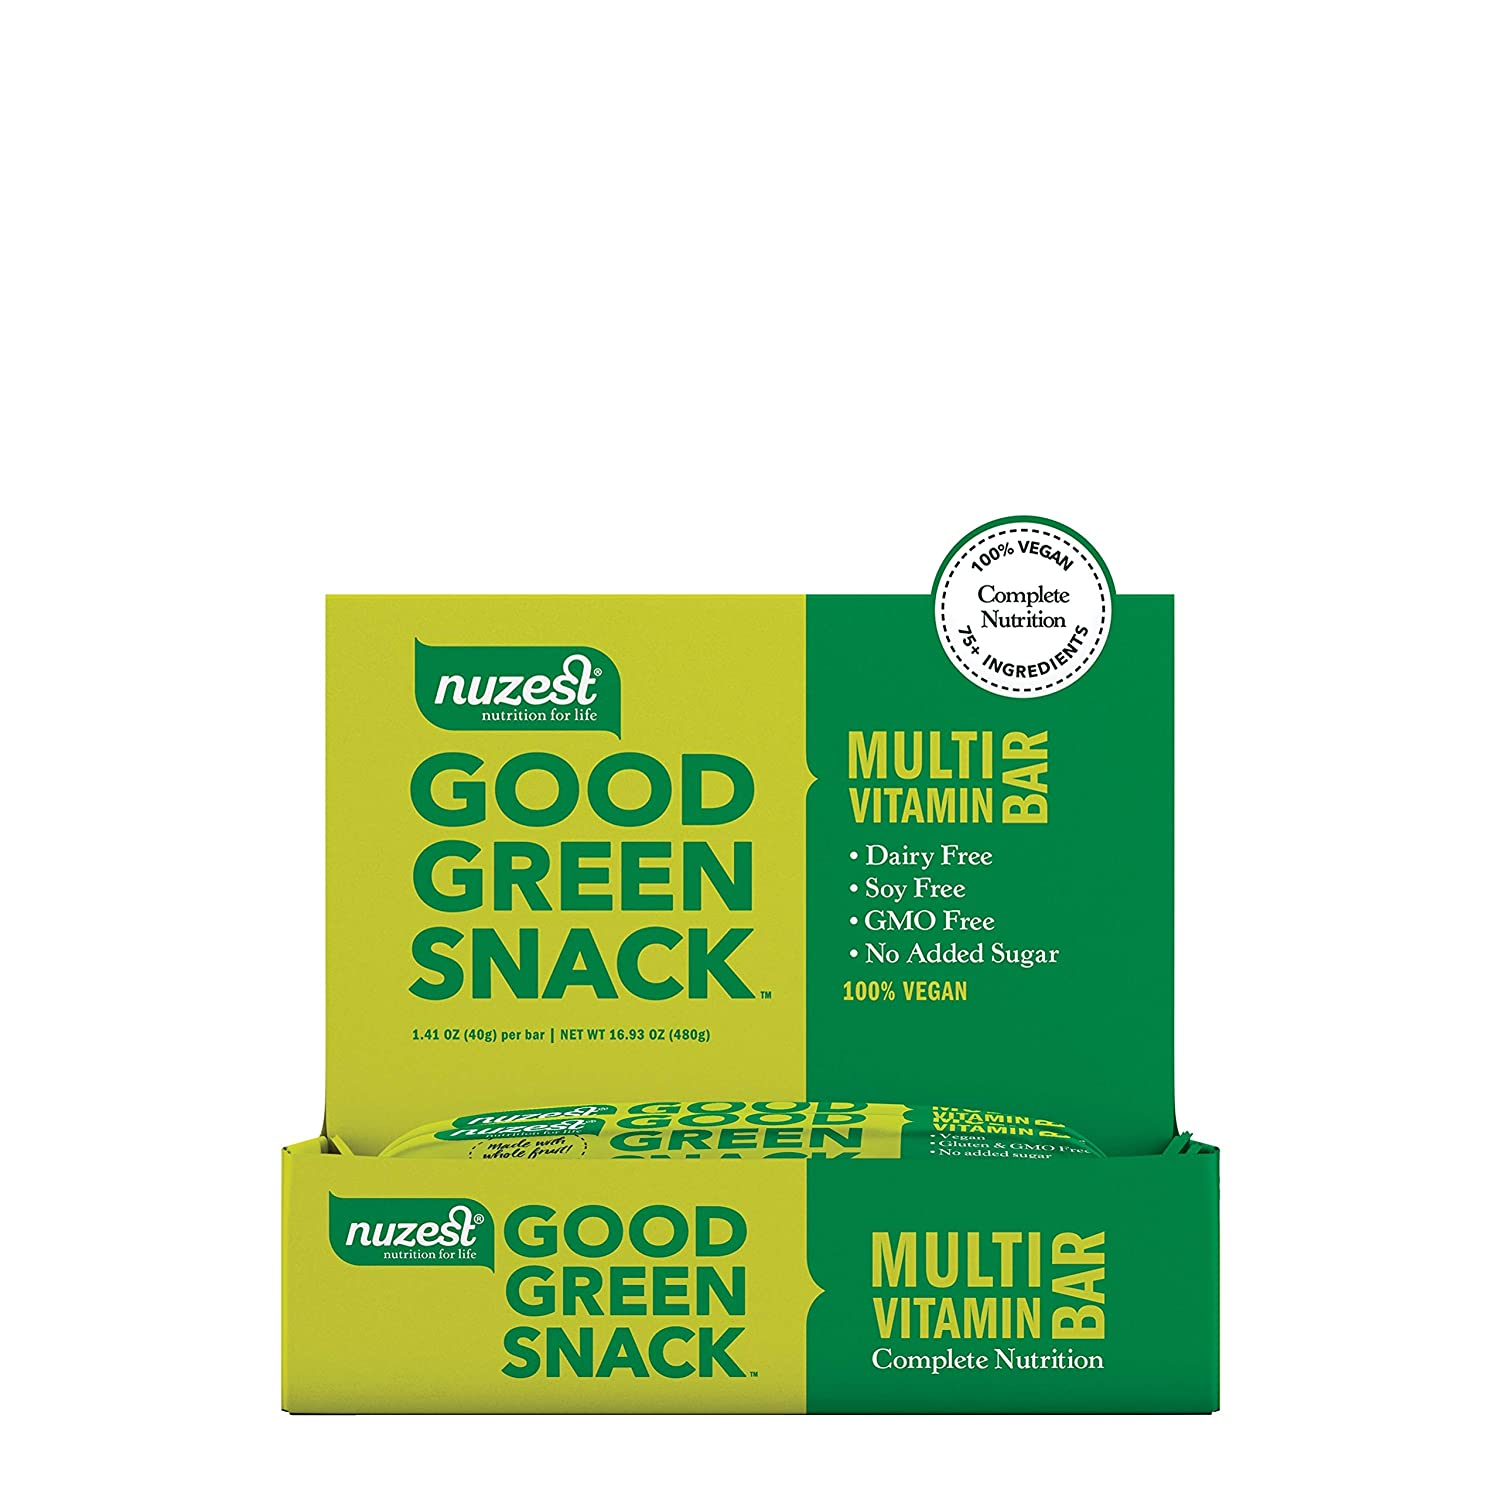 Nuzest Good Green Snack Bar – 50 of Daily Vitamins and Minerals, Natural Energy Booster, No Sugar Added, Vegan, Source of B12, 100 Plant-Based, Box of 12